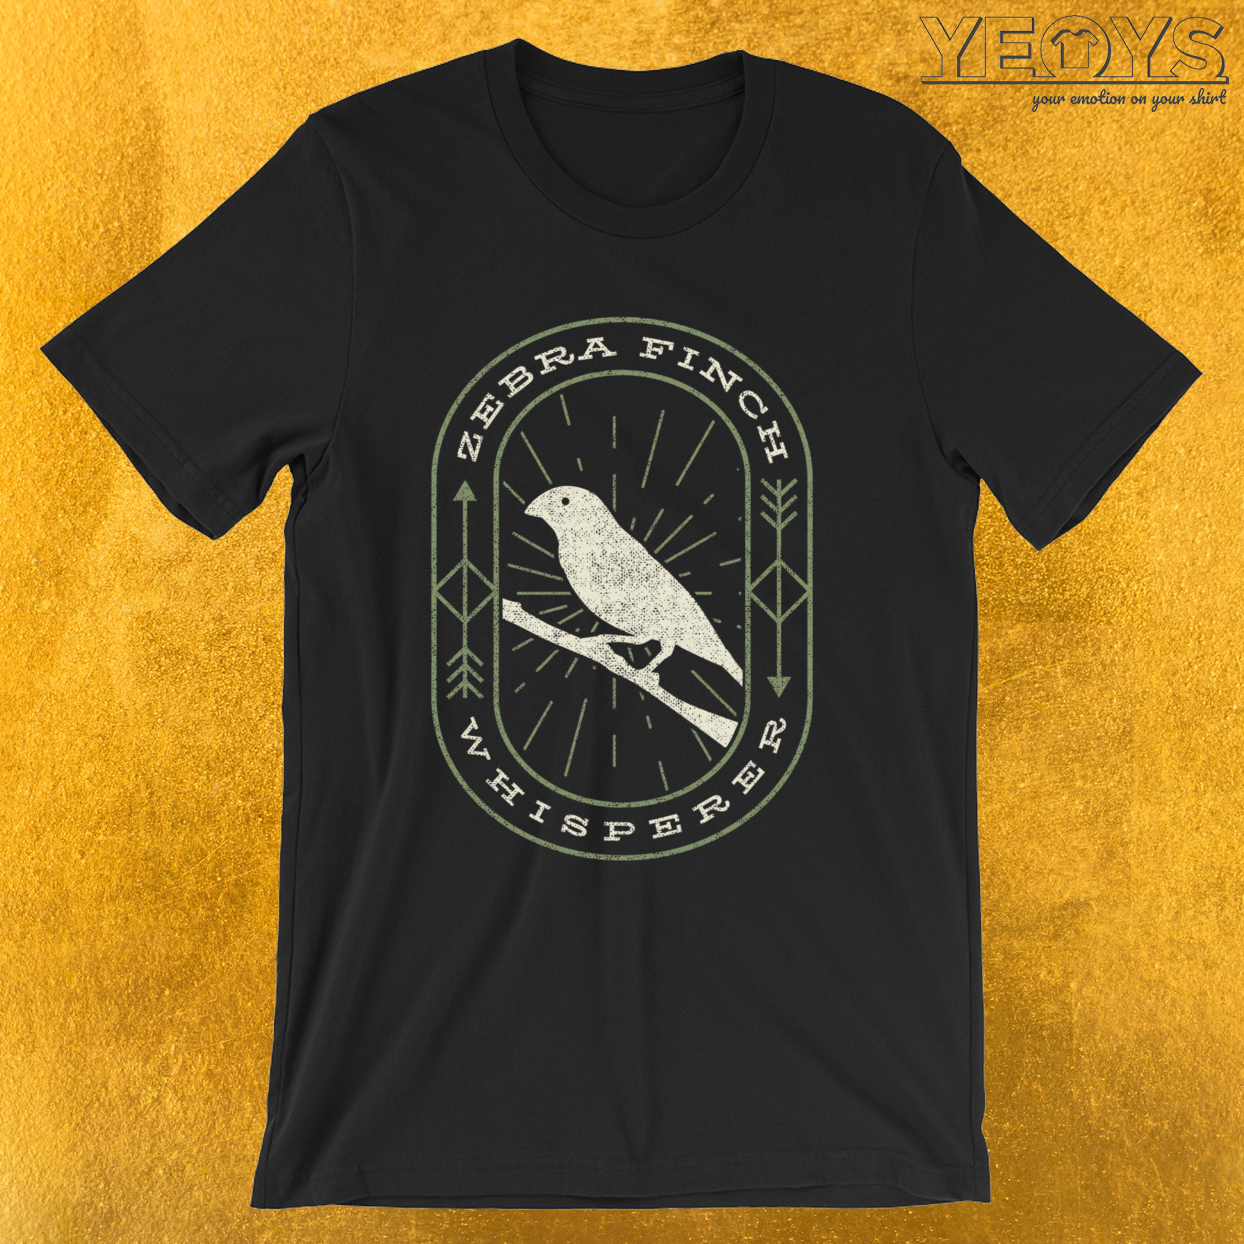 Zebra Finch Whisperer – Bird Watching Tee